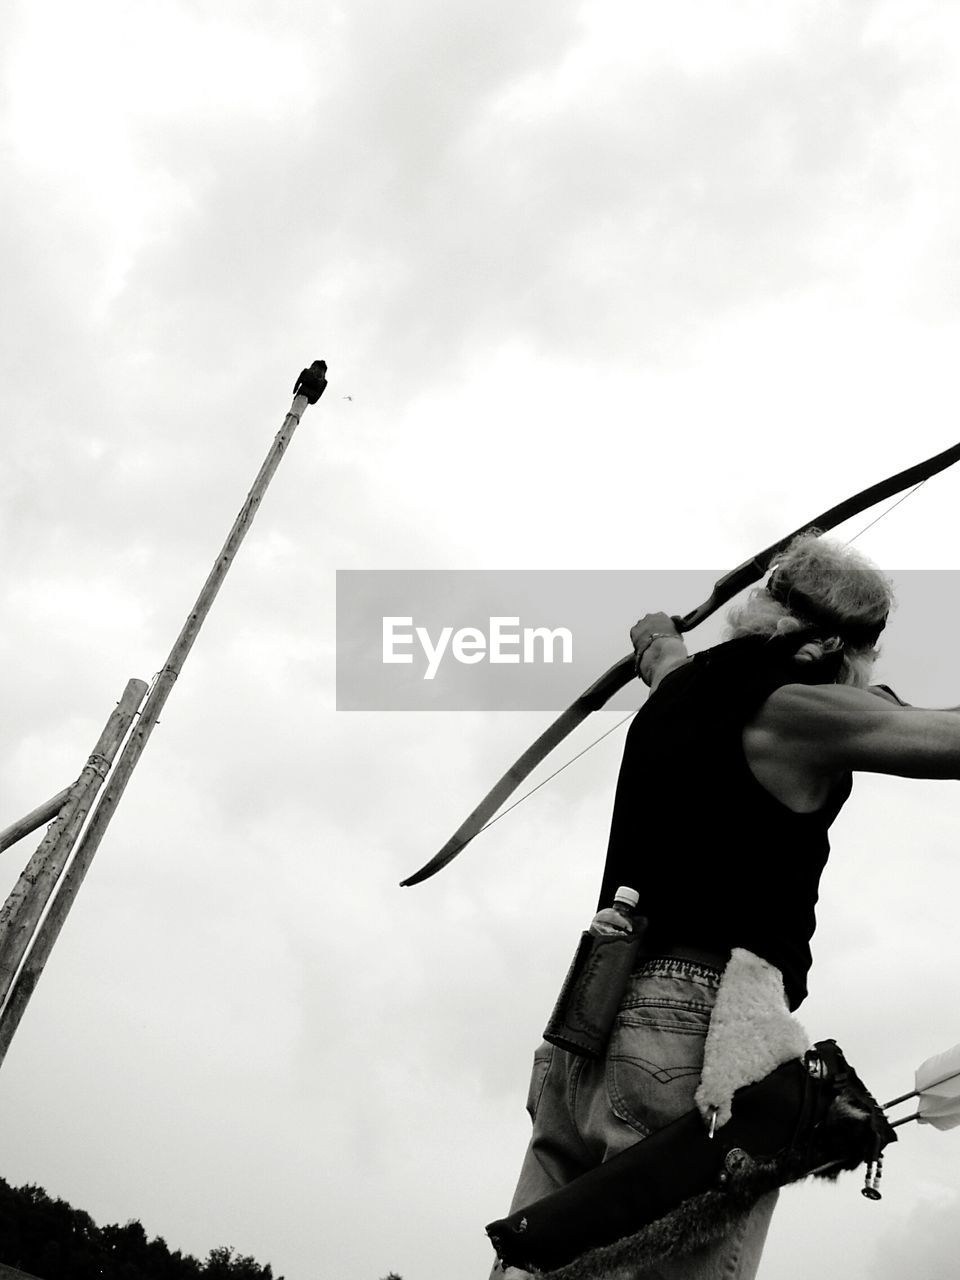 Low Angle View Of Man Aiming Bow And Arrow Against Sky